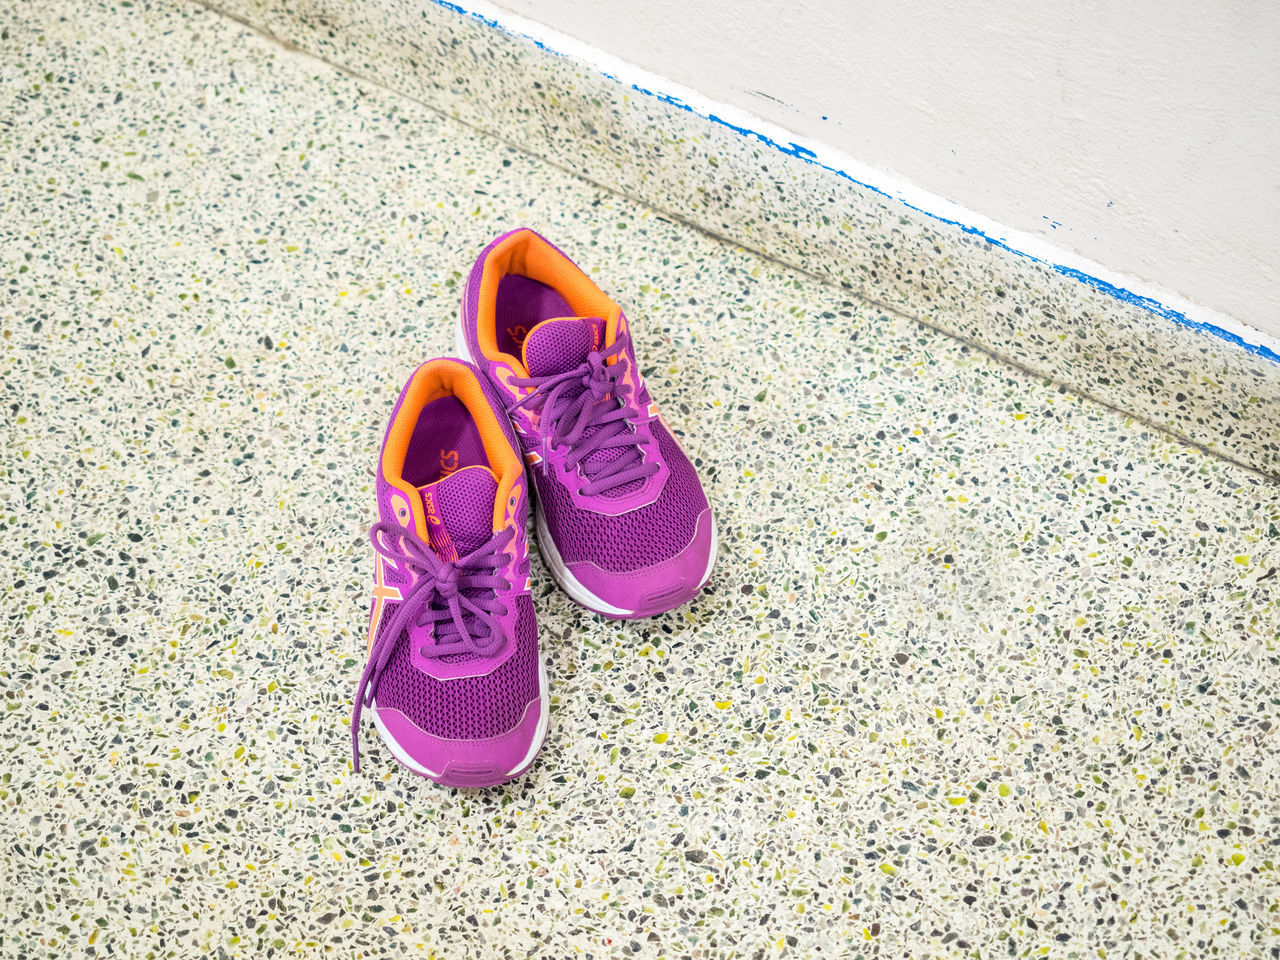 Lonely shooes after the hip hop gym After Dans Color HipHop Jogging Jogging Shoes Lilac Shooes Lonely Shoes Norway Scandiniavia Shooes Sneakers Strong Shoes